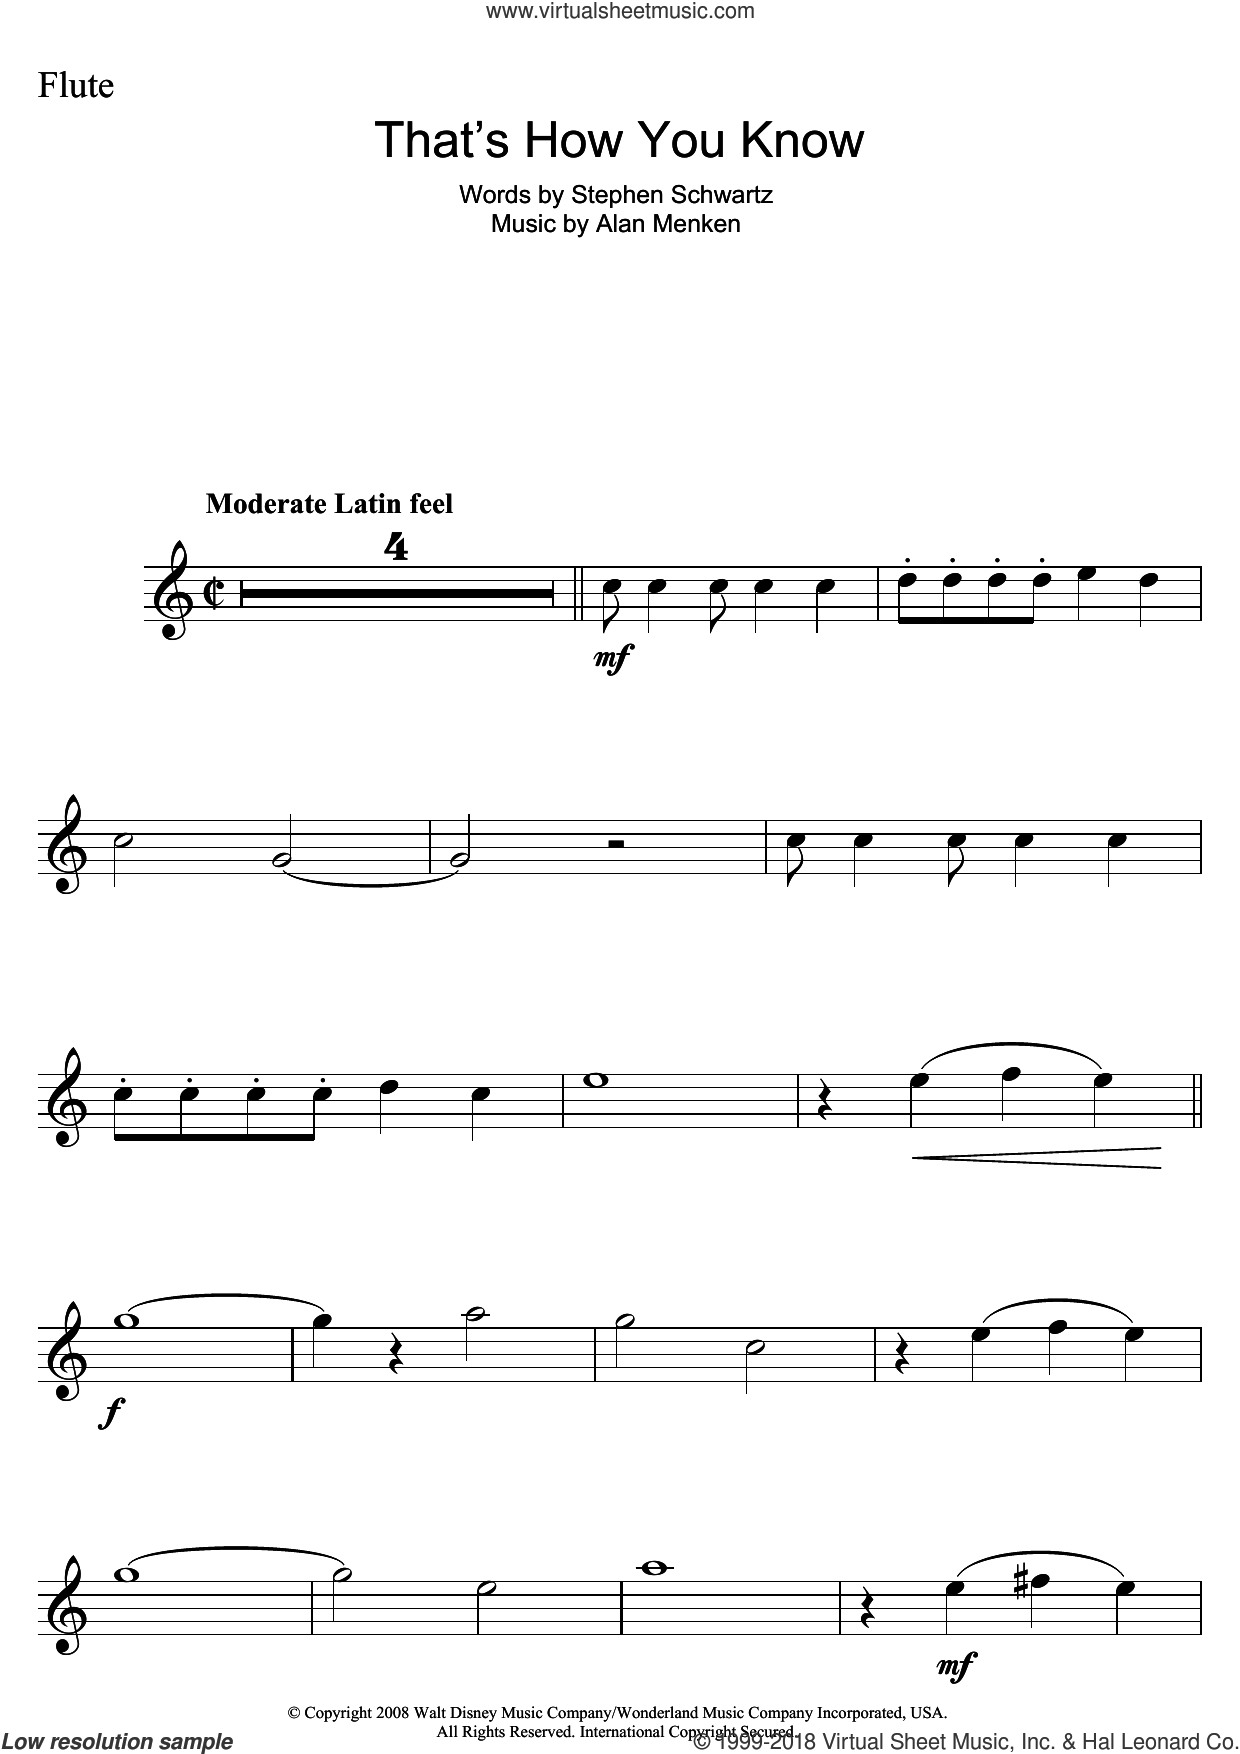 That's How You Know (from Enchanted) sheet music for flute solo by Alan Menken and Stephen Schwartz. Score Image Preview.